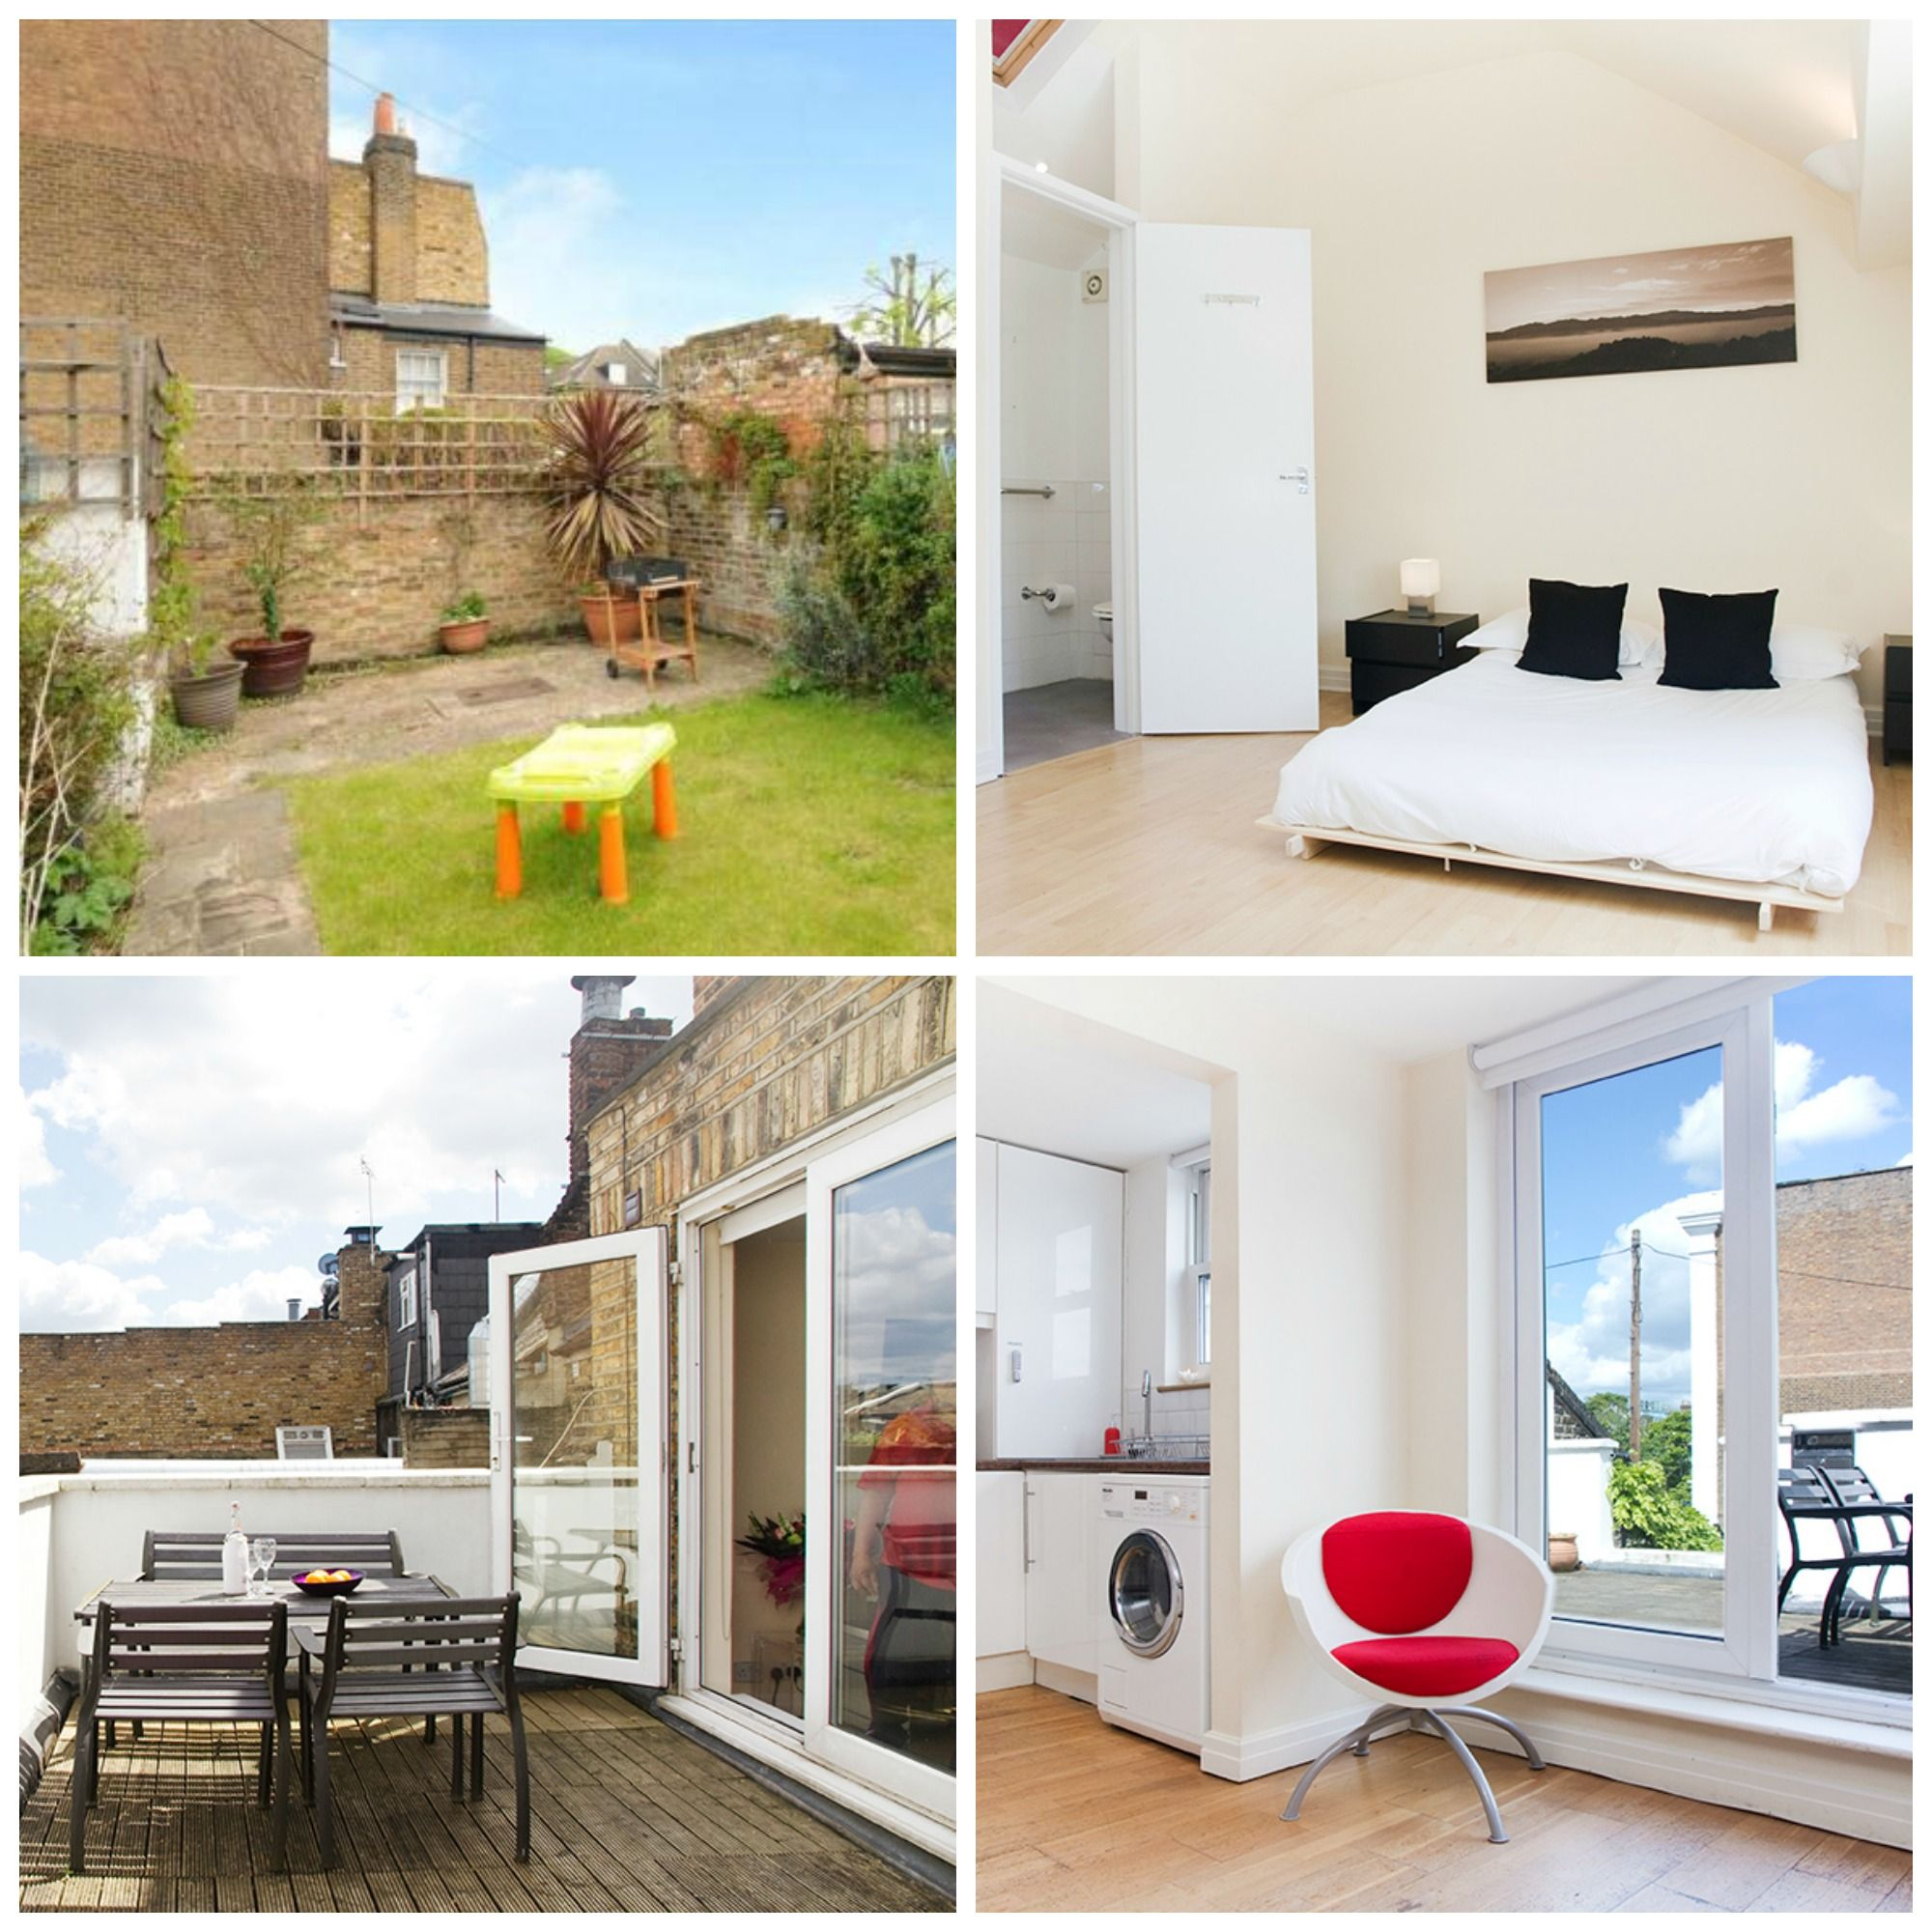 Apartments For Rent In London Uk: Pin By Holiday Lets London On Apartments In London